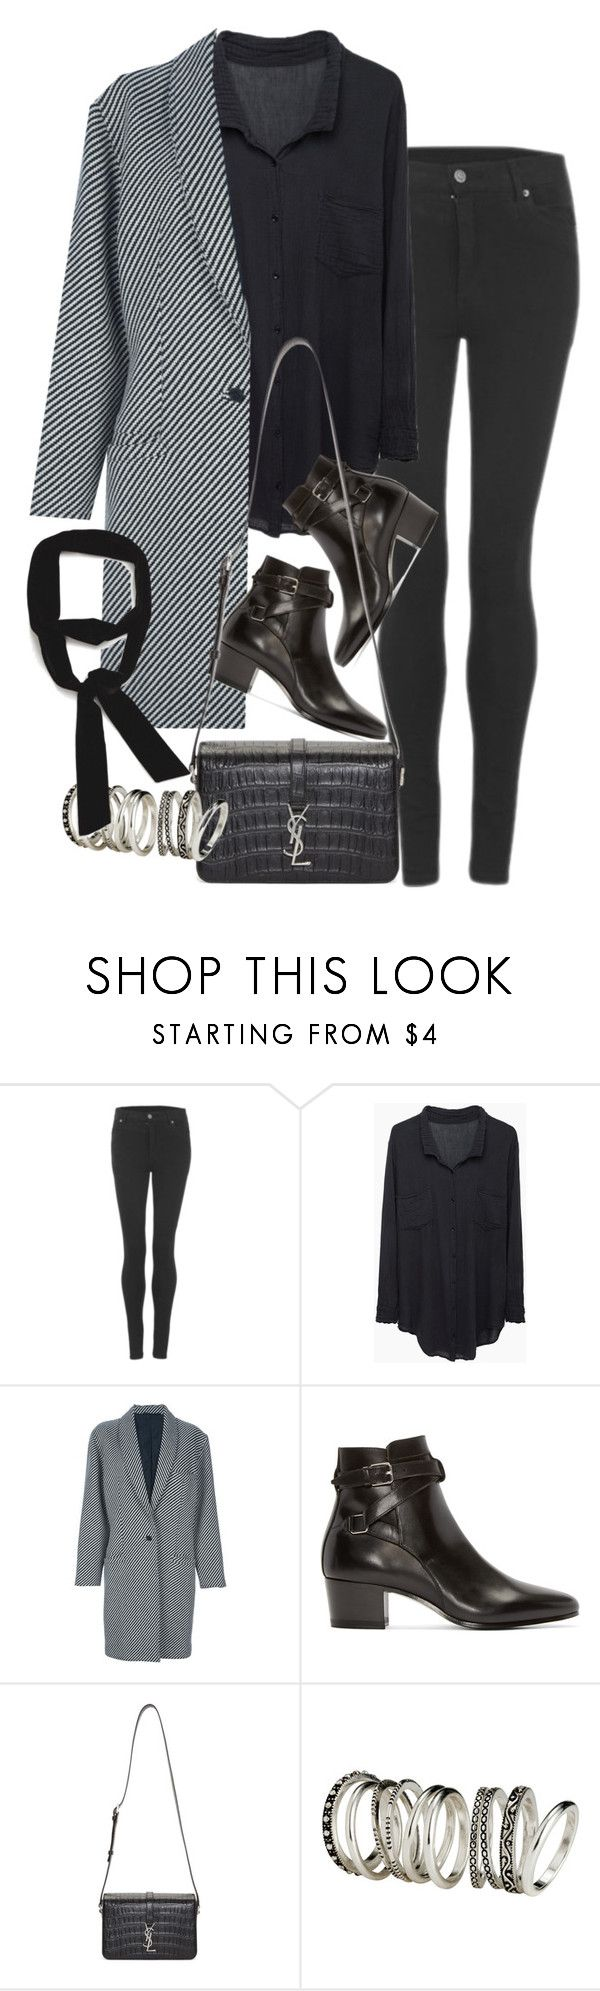 """Untitled #8657"" by nikka-phillips ❤ liked on Polyvore featuring Cheap Monday, Raquel Allegra, Versace, Yves Saint Laurent, H&M, Zara, women's clothing, women, female and woman"